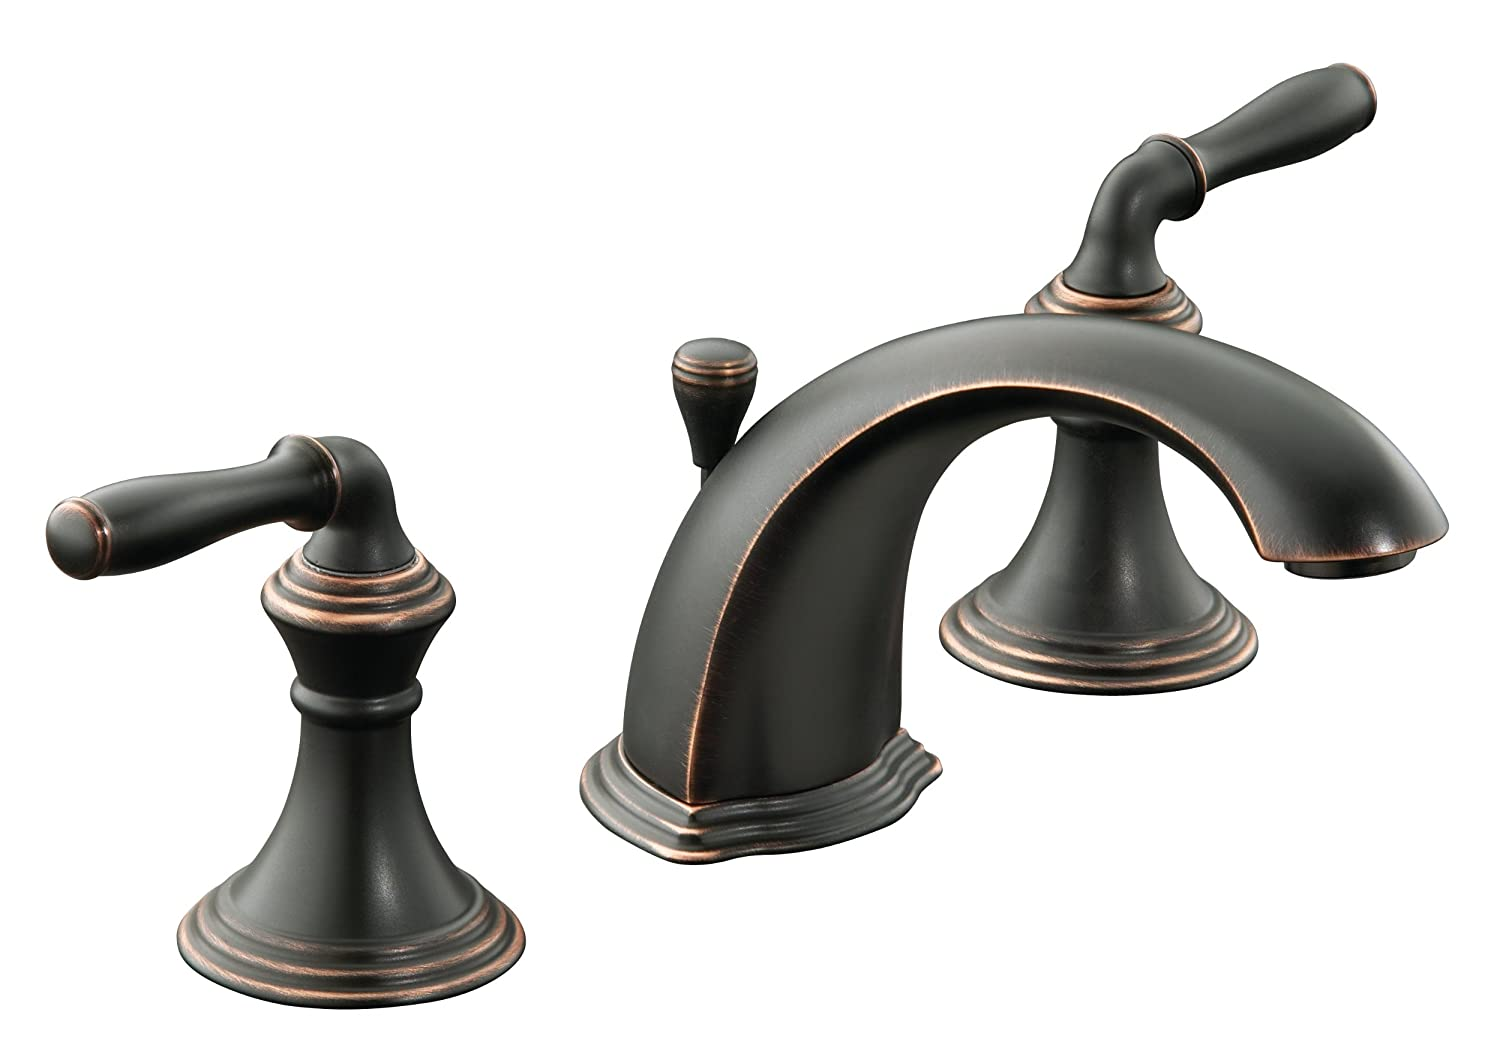 KOHLER K-394-4-BRZ Devonshire Widespread Lavatory Faucet, Oil-Rubbed ...